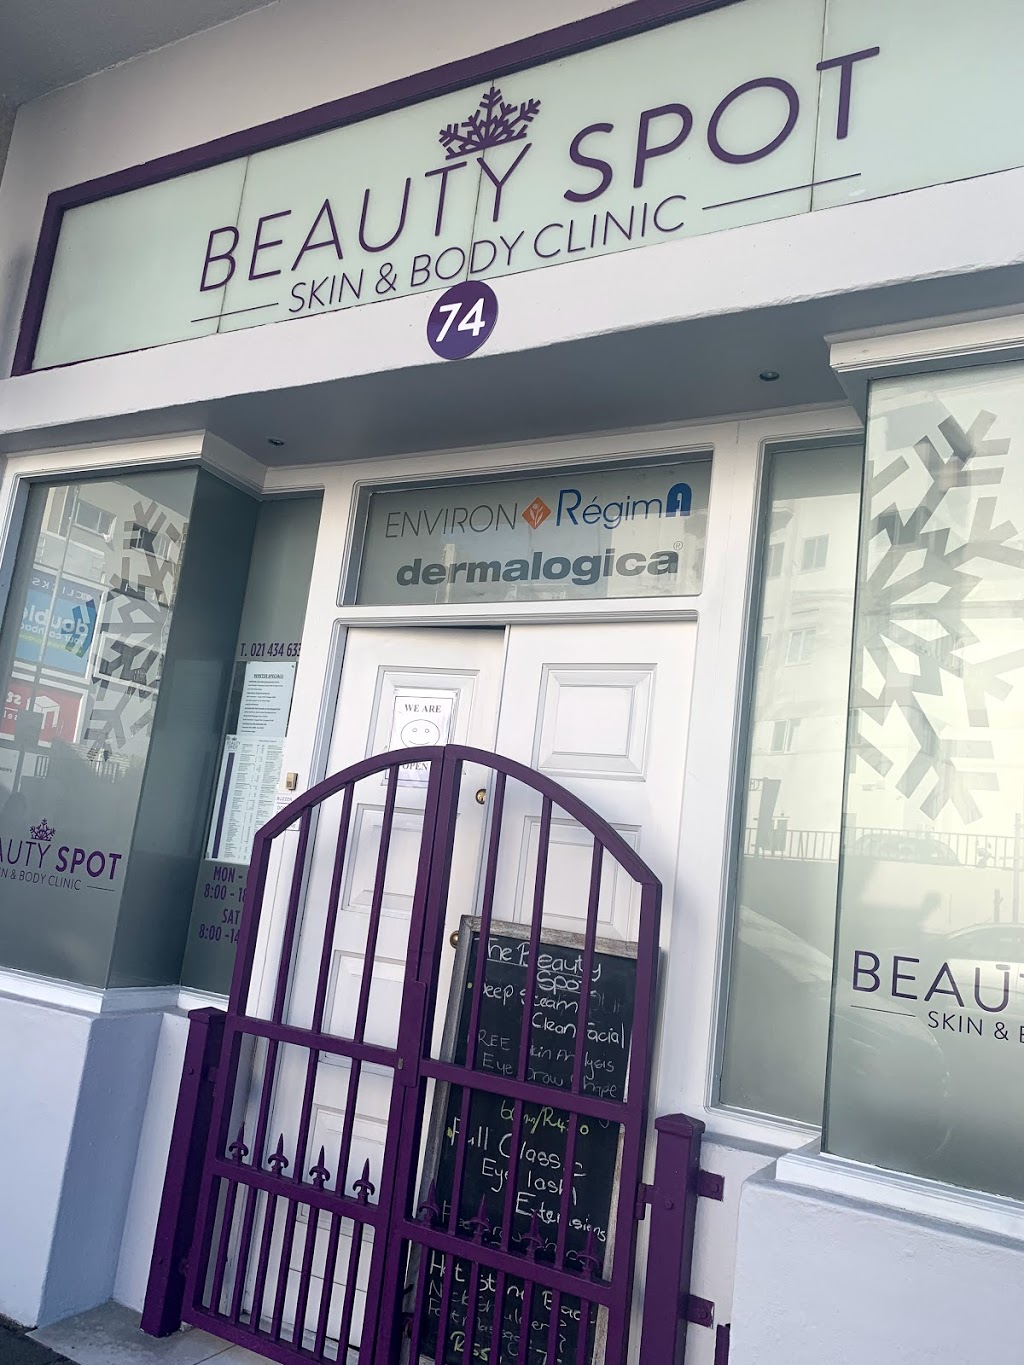 Beauty Spot Skin & Body Clinic | health | 82 Ral Ral Ave, Renmark SA 5341, Australia | 0885864077 OR +61 8 8586 4077